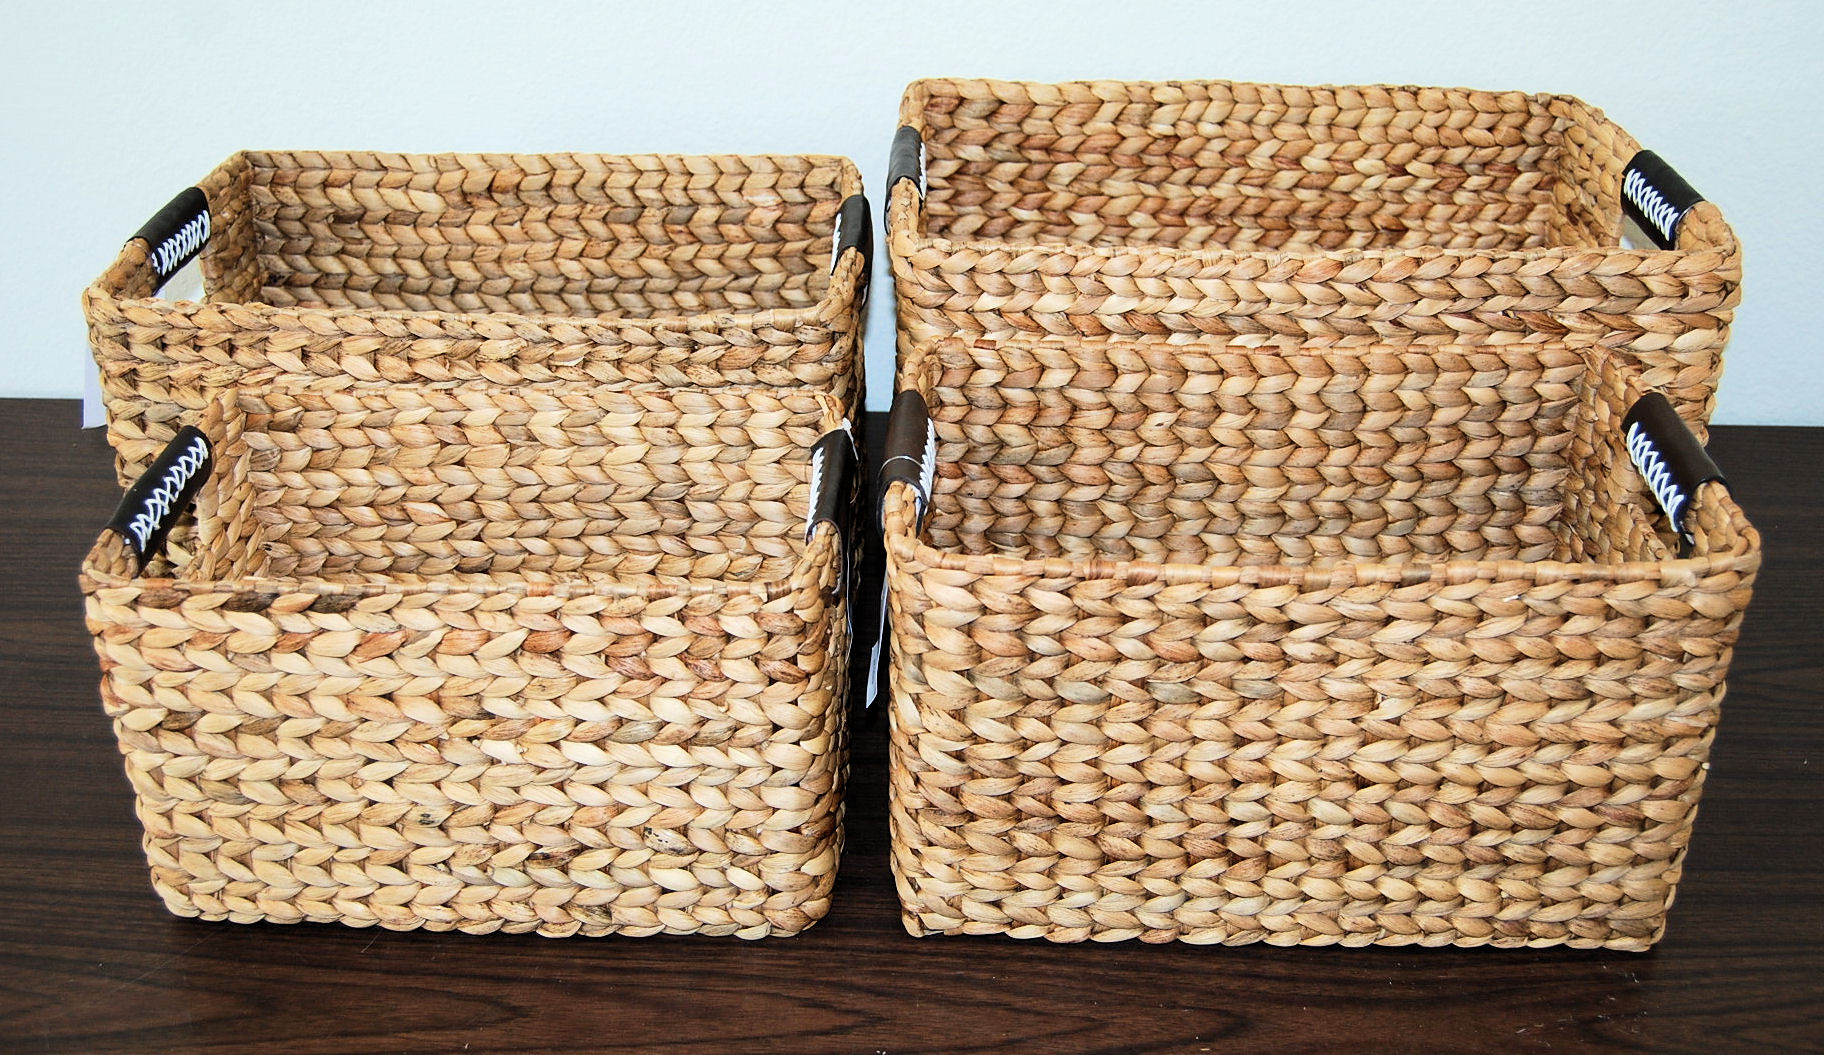 Attrayant C351241010044. Set Of 4 Natural Kipas Rectangular Storage Baskets ...